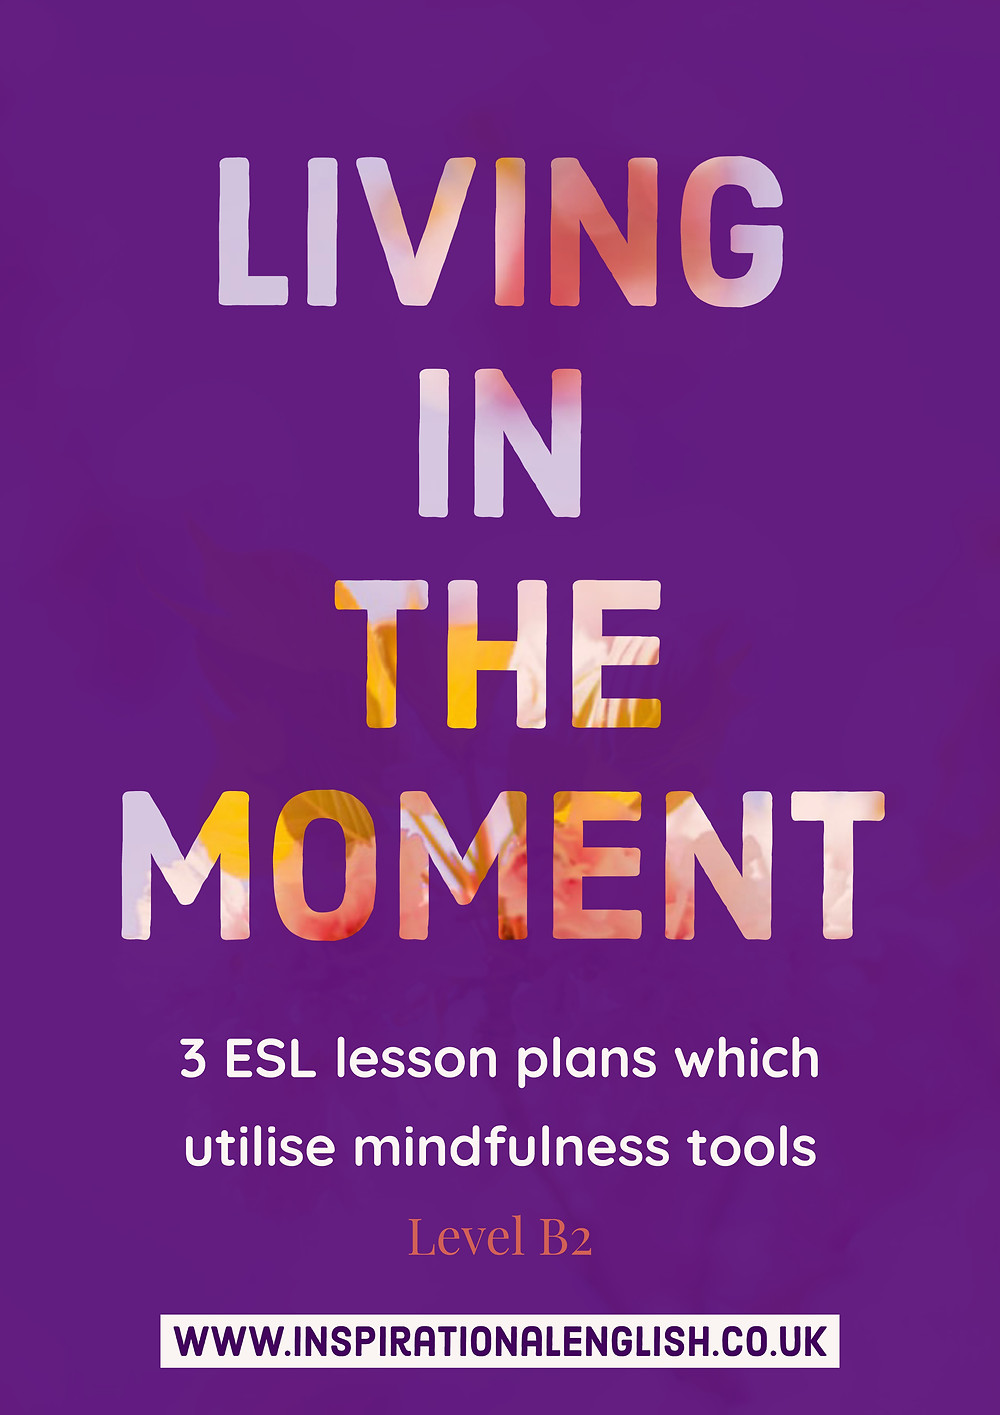 Living in the Moment-  3 ESL plans utilising Mindfulness elements